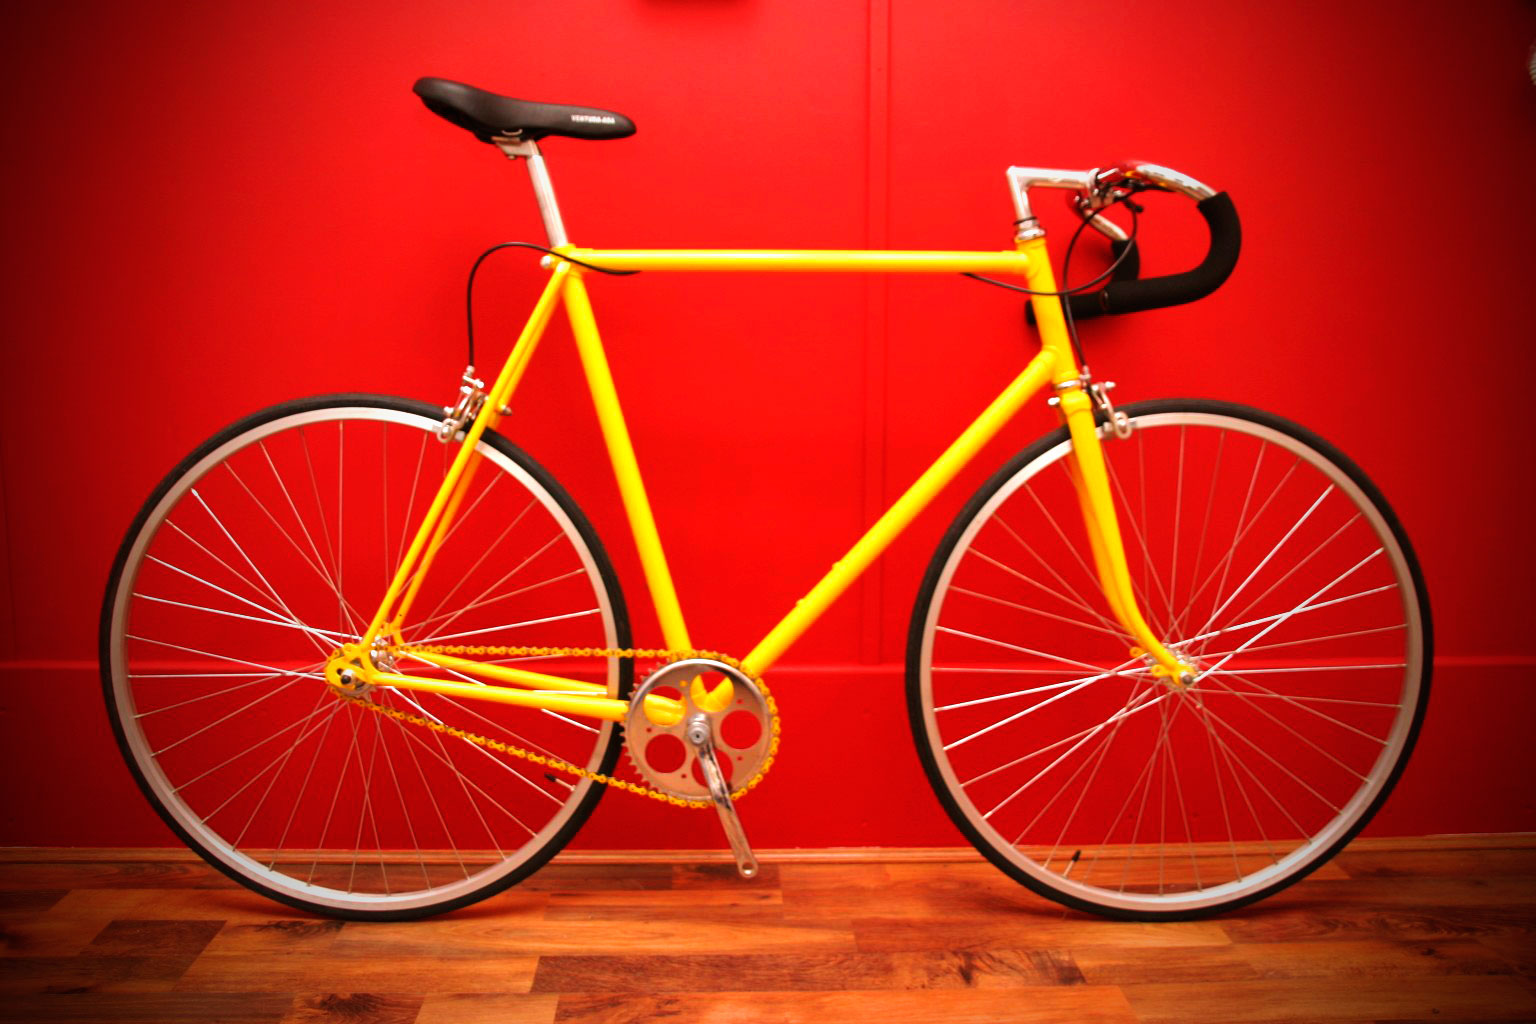 raleigh drop handlebars yellow